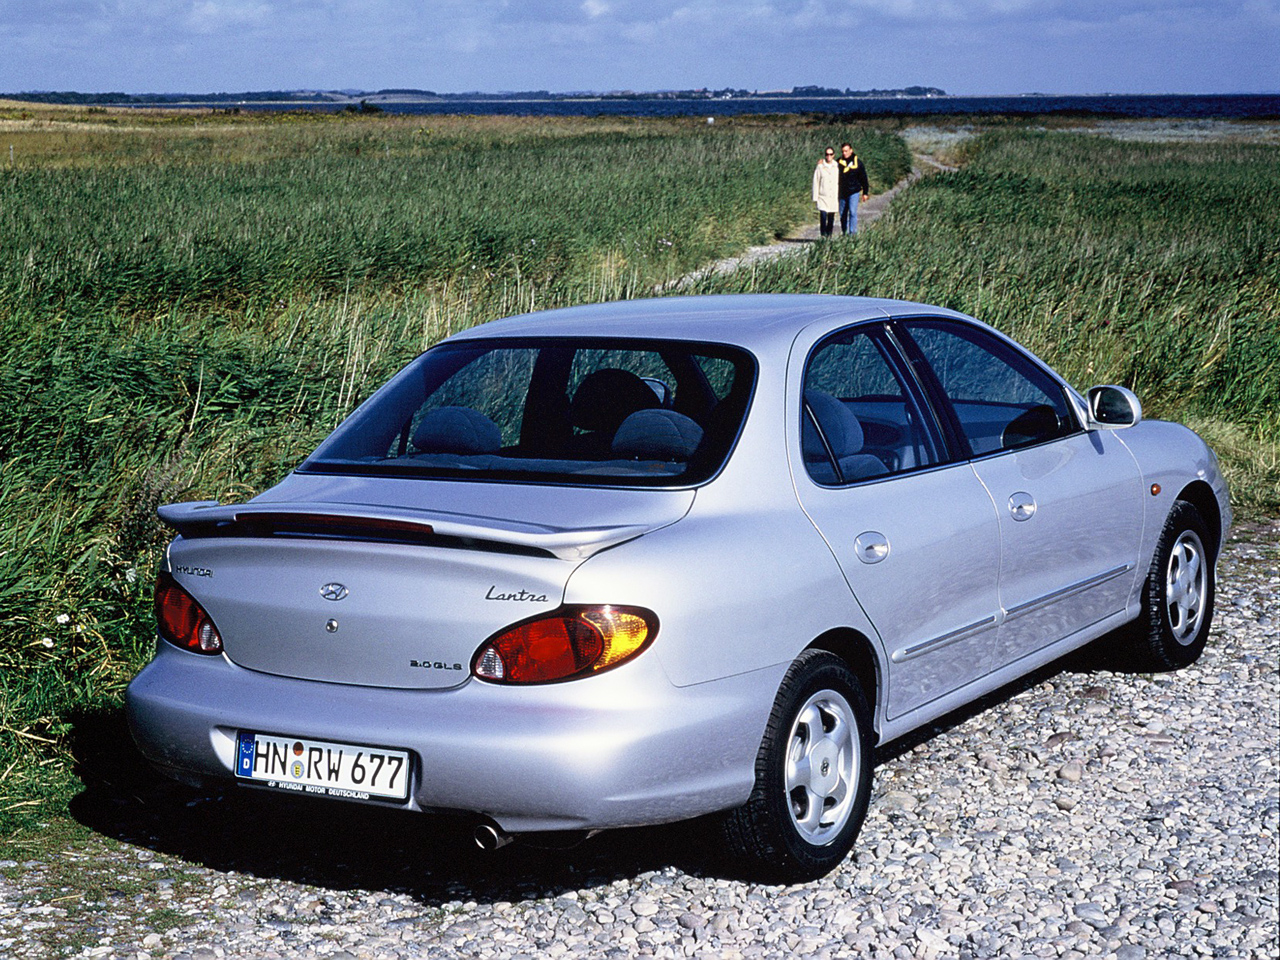 Hyundai Elantra 2.0 1998 photo - 10